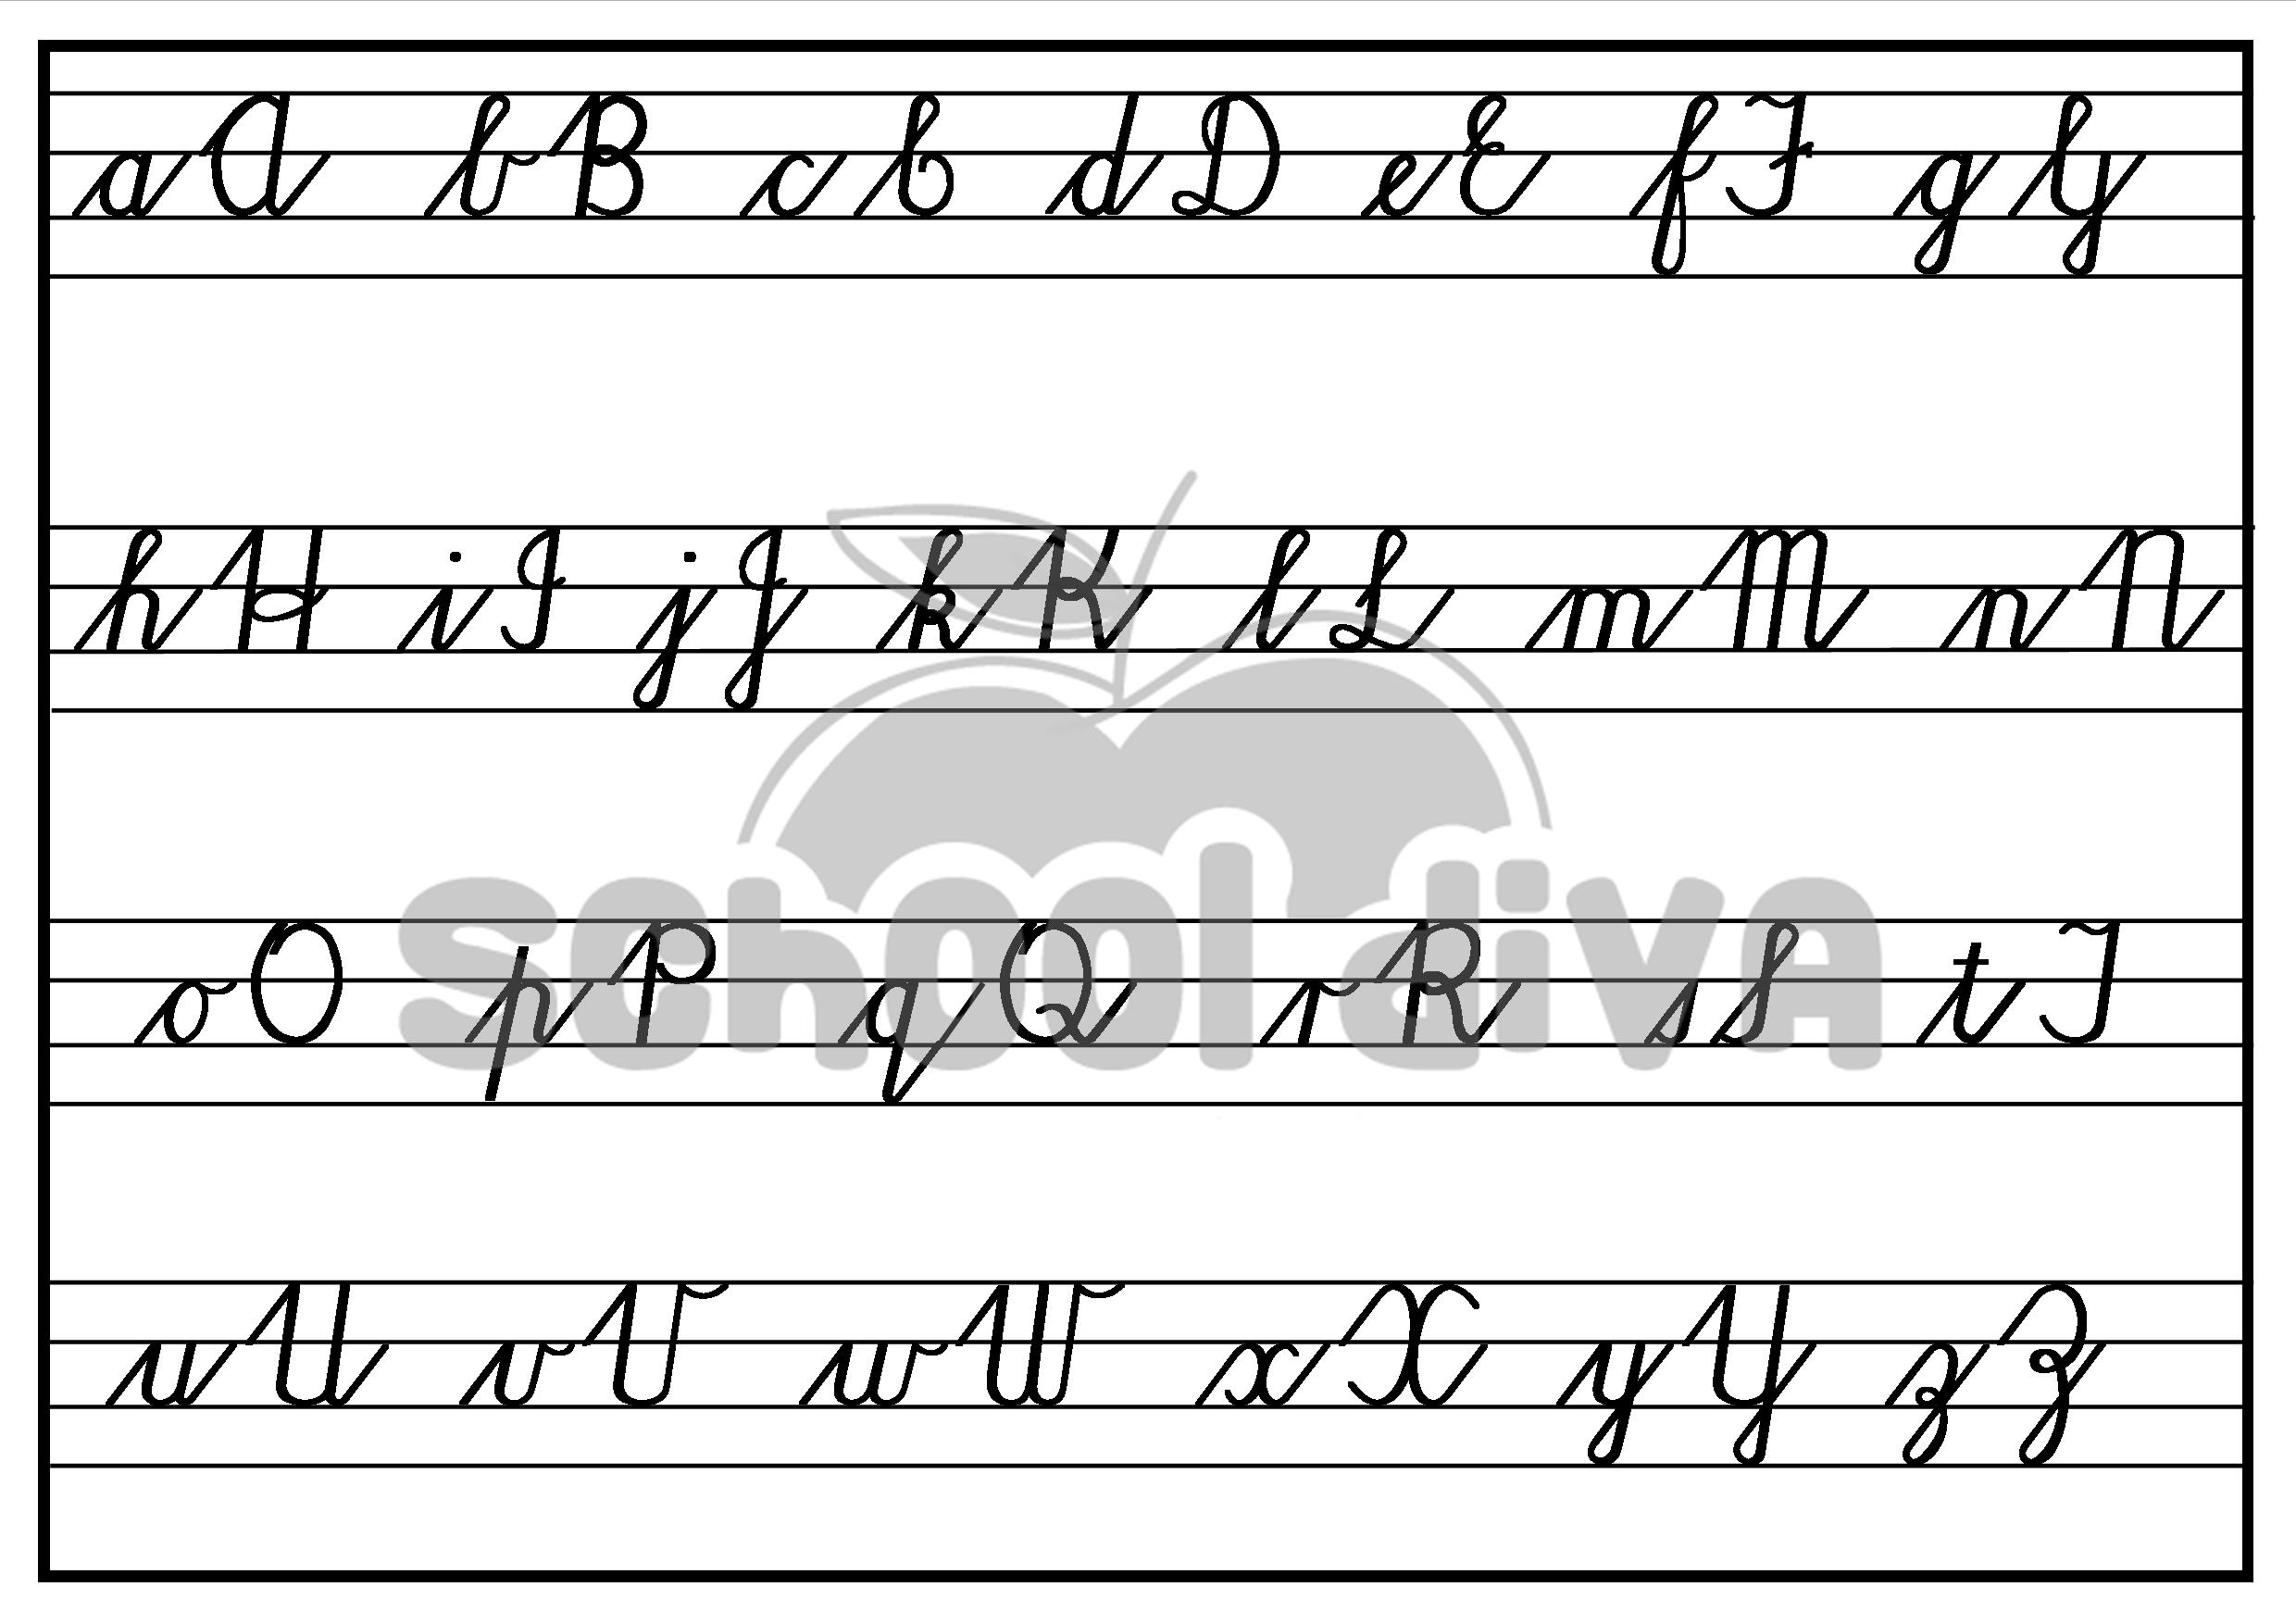 cursive writing worksheets printable Print these cursive handwriting worksheets to use in the classroom or home for extra handwriting practice each worksheet looks at 2, 3 or 4 letters using similar strokes.